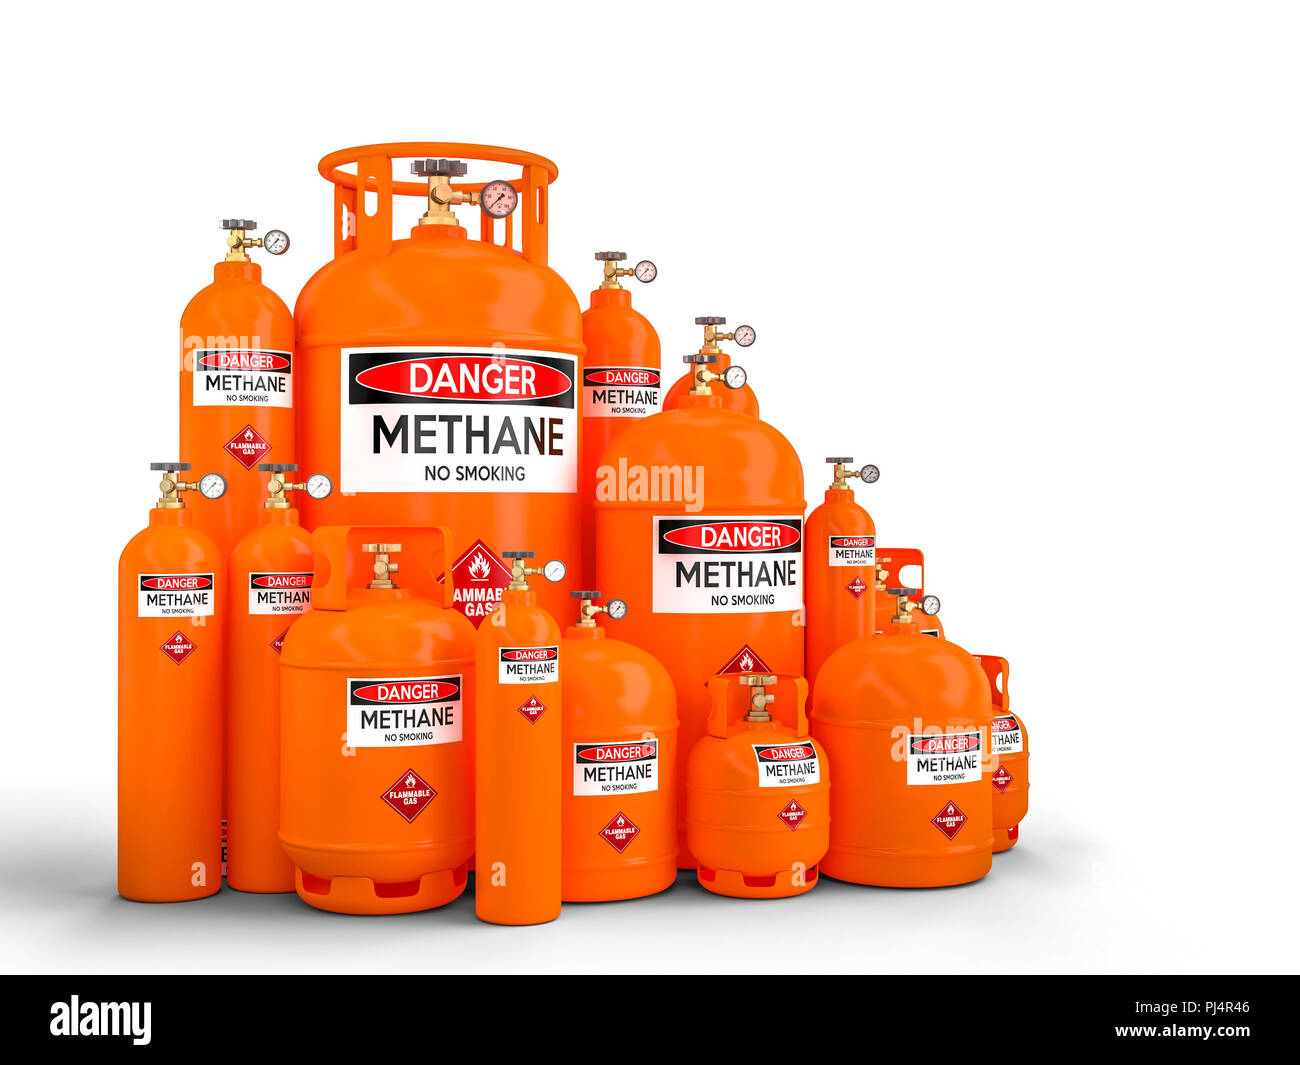 different methane cylinder container 3d rendering image - Stock Image